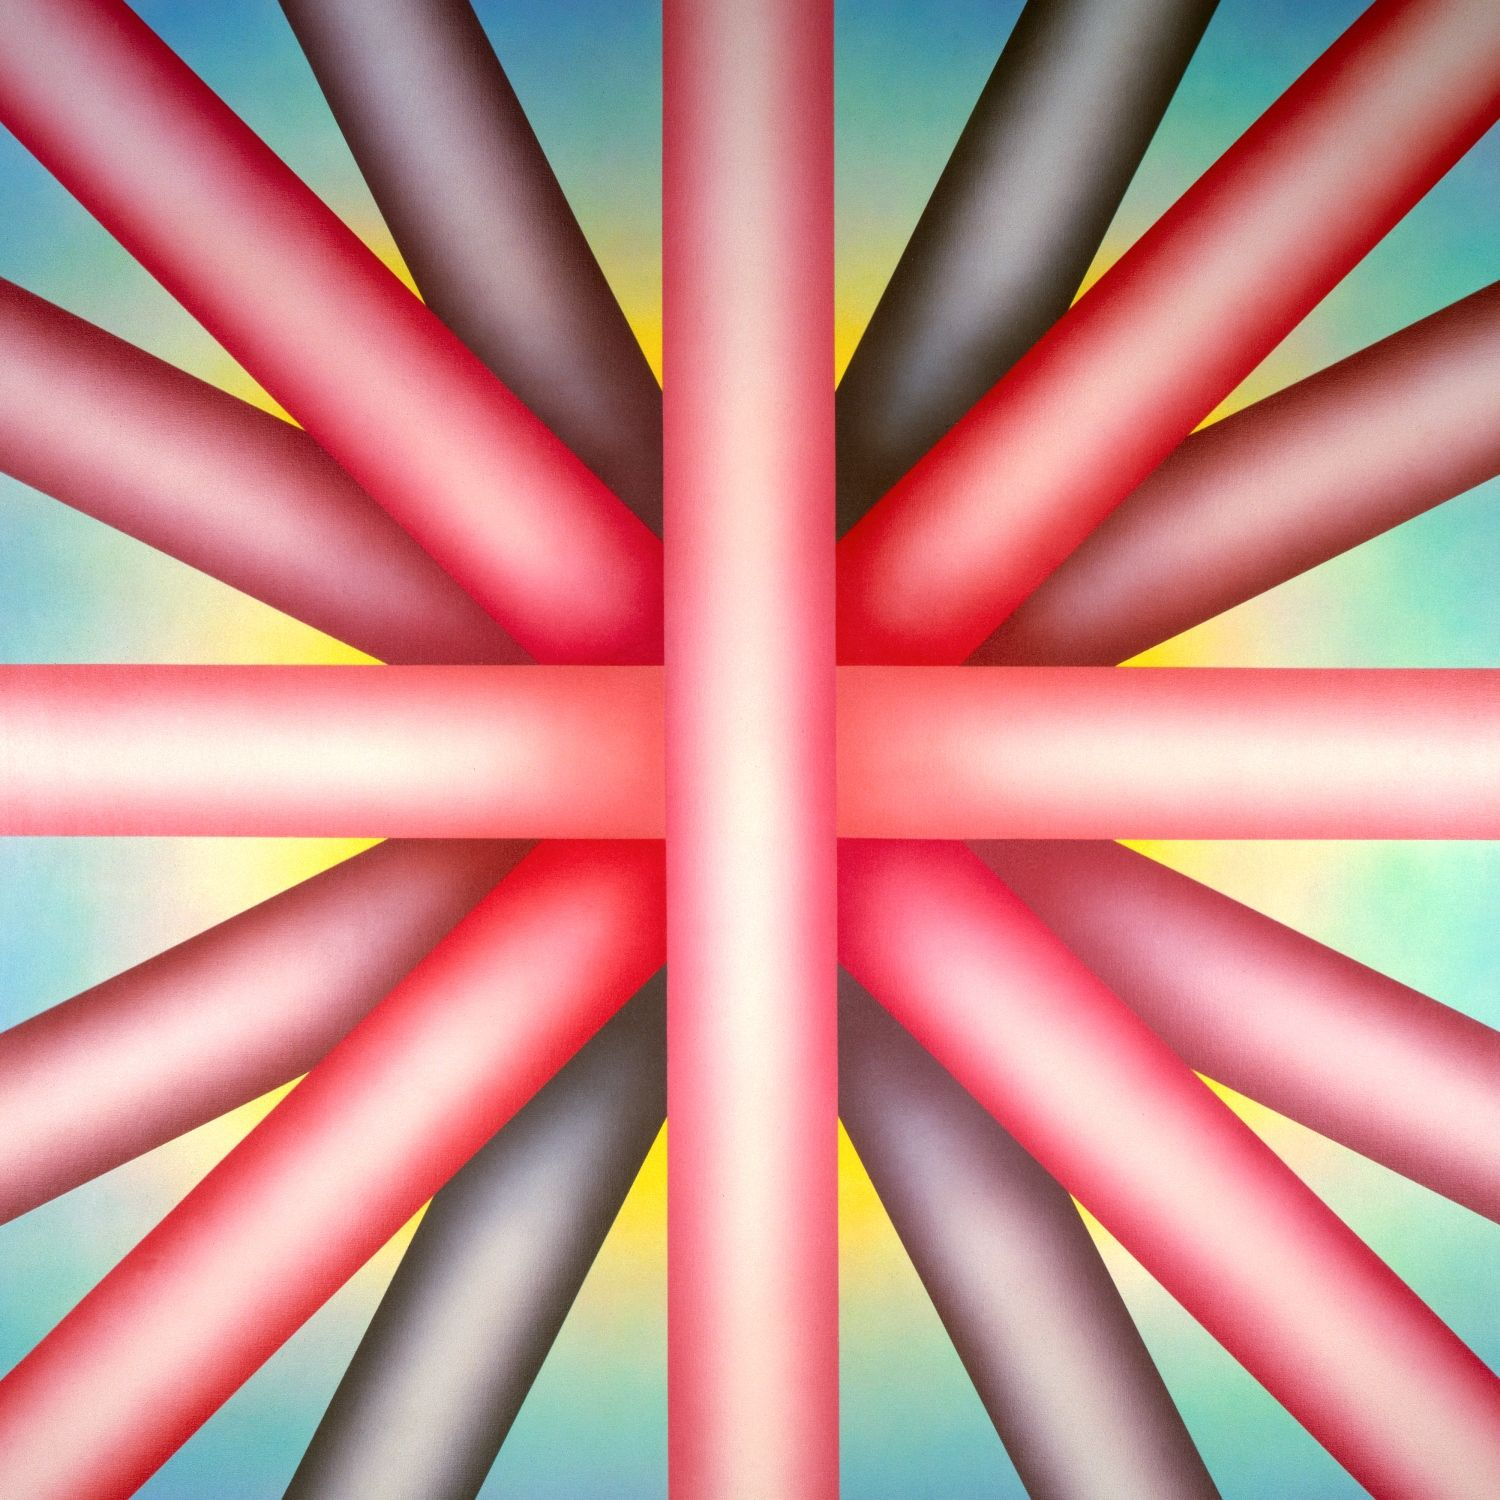 Judy Chicago (American, b. 1939). Heaven is for White Men Only, 1973. Sprayed acrylic on canvas, 80 × 80 in. (203.2 × 203.2 cm). New Orleans Museum of Art, Gift of the Frederick R. Weisman Art Foundation, 93.12. © Judy Chicago. Photo: © Donald Woodman